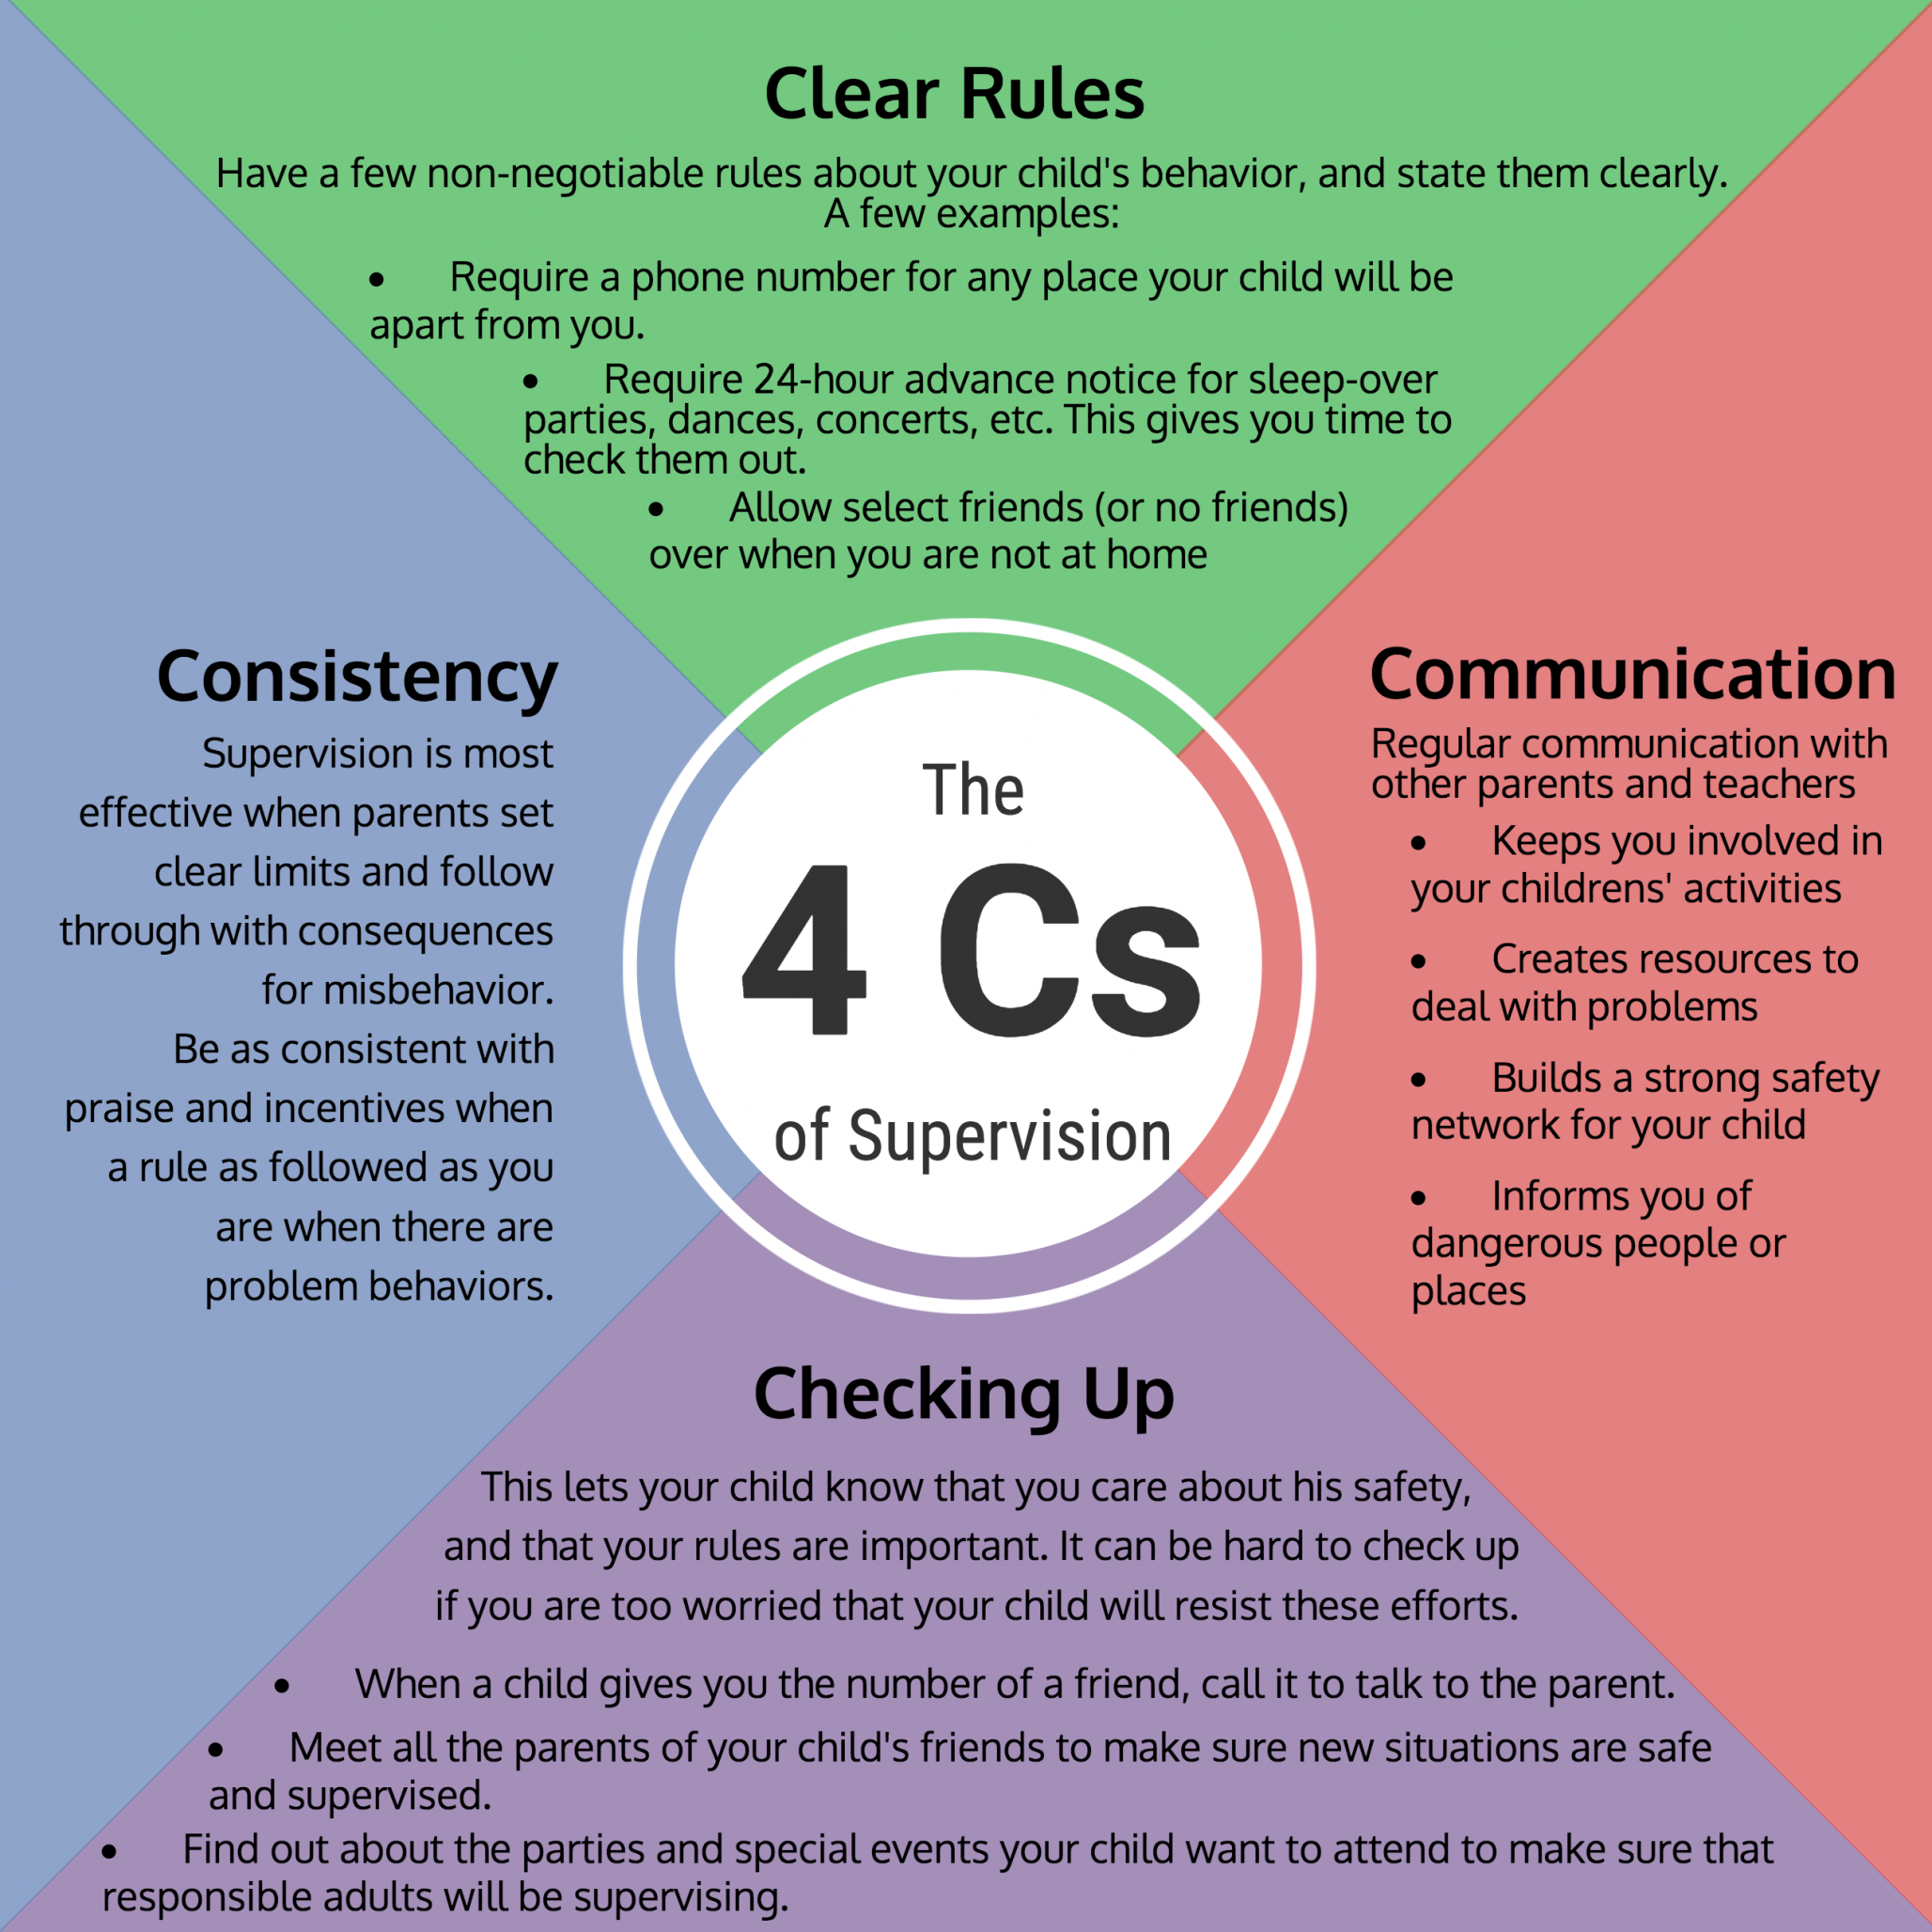 The 4Cs of supervision: Clear Rules, Communication, Checking Up, and Consistency